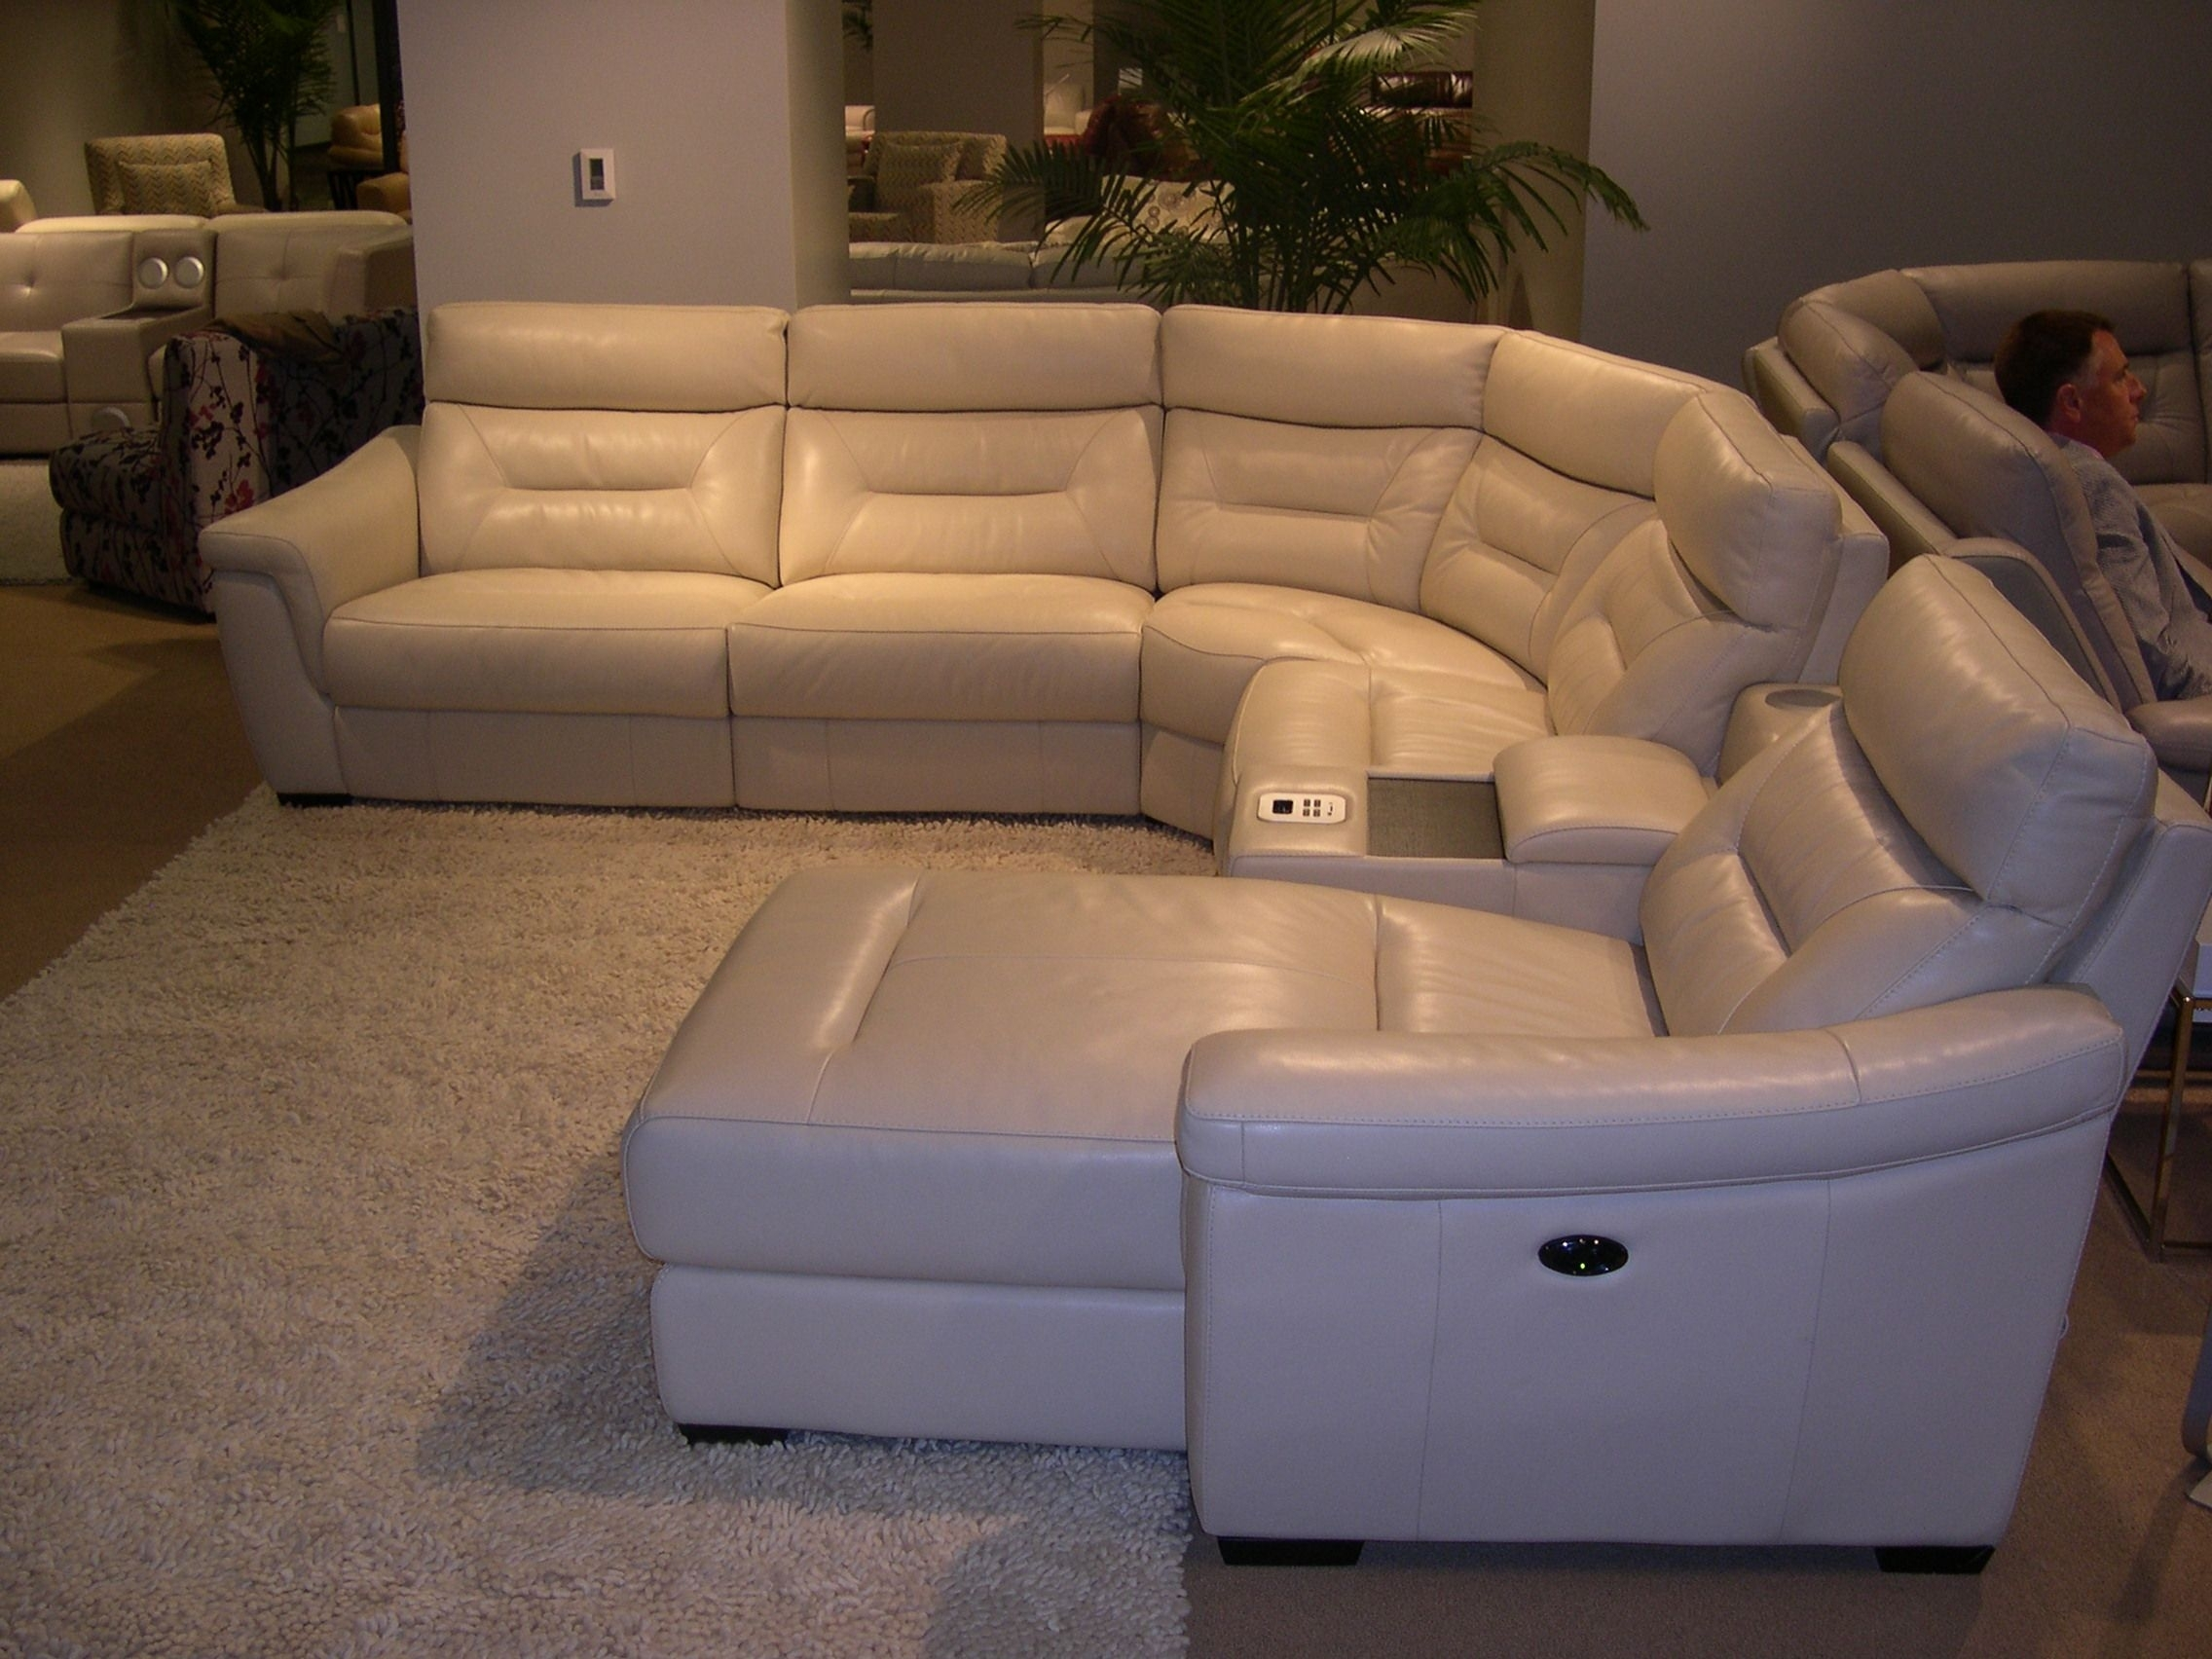 Htl Leather Sectional - Adjustable Headrests. Note The Built-In regarding Ventura County Sectional Sofas (Image 4 of 10)